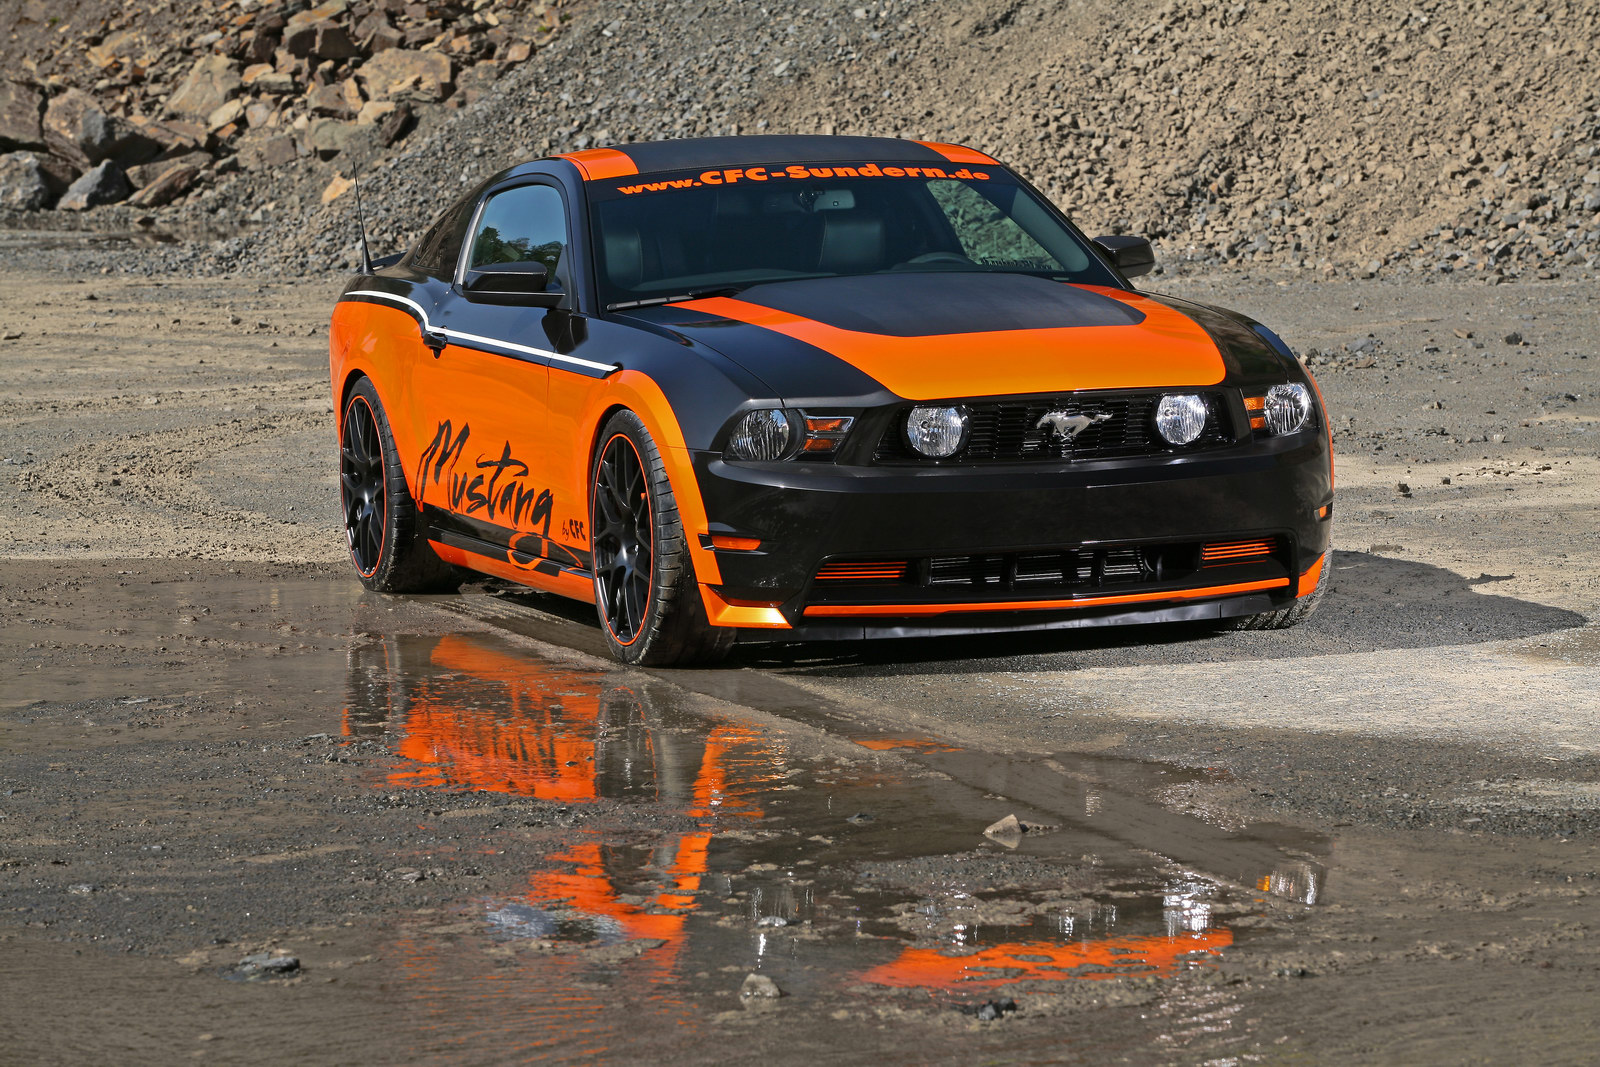 Němci z Design World upravili Ford Mustang GT 2